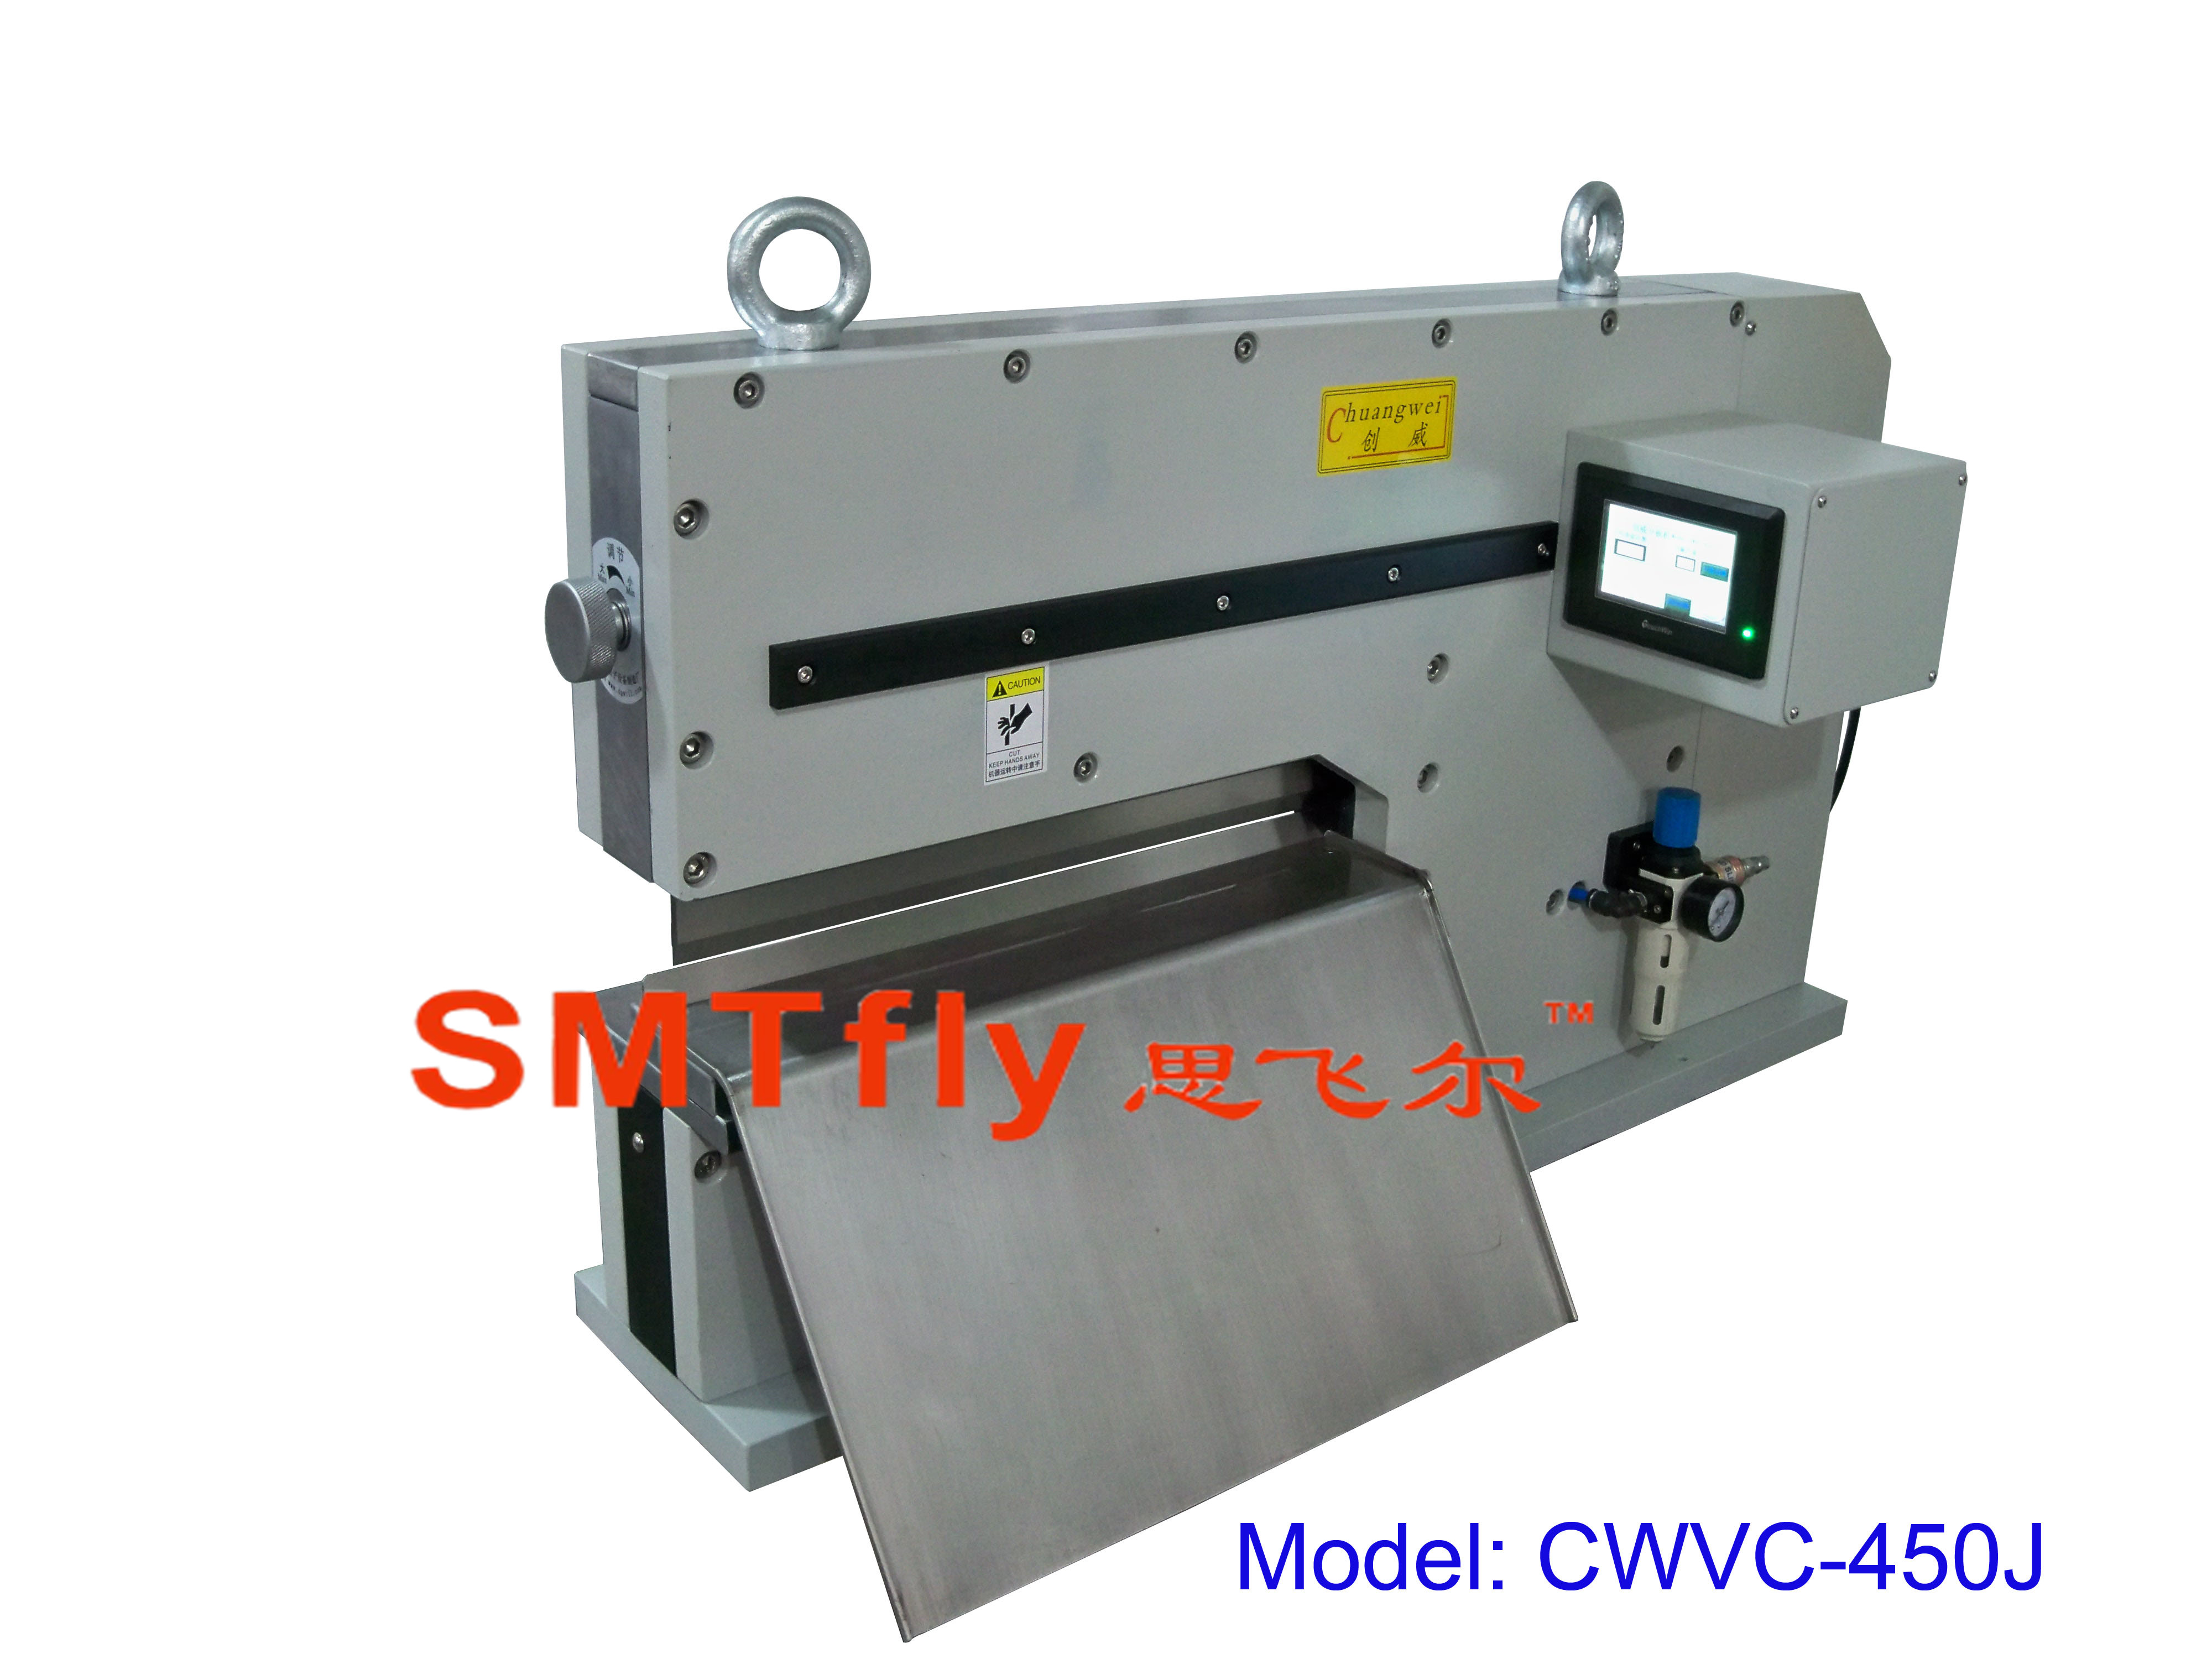 PCB Board Depaneling Machine,SMTfly-450J